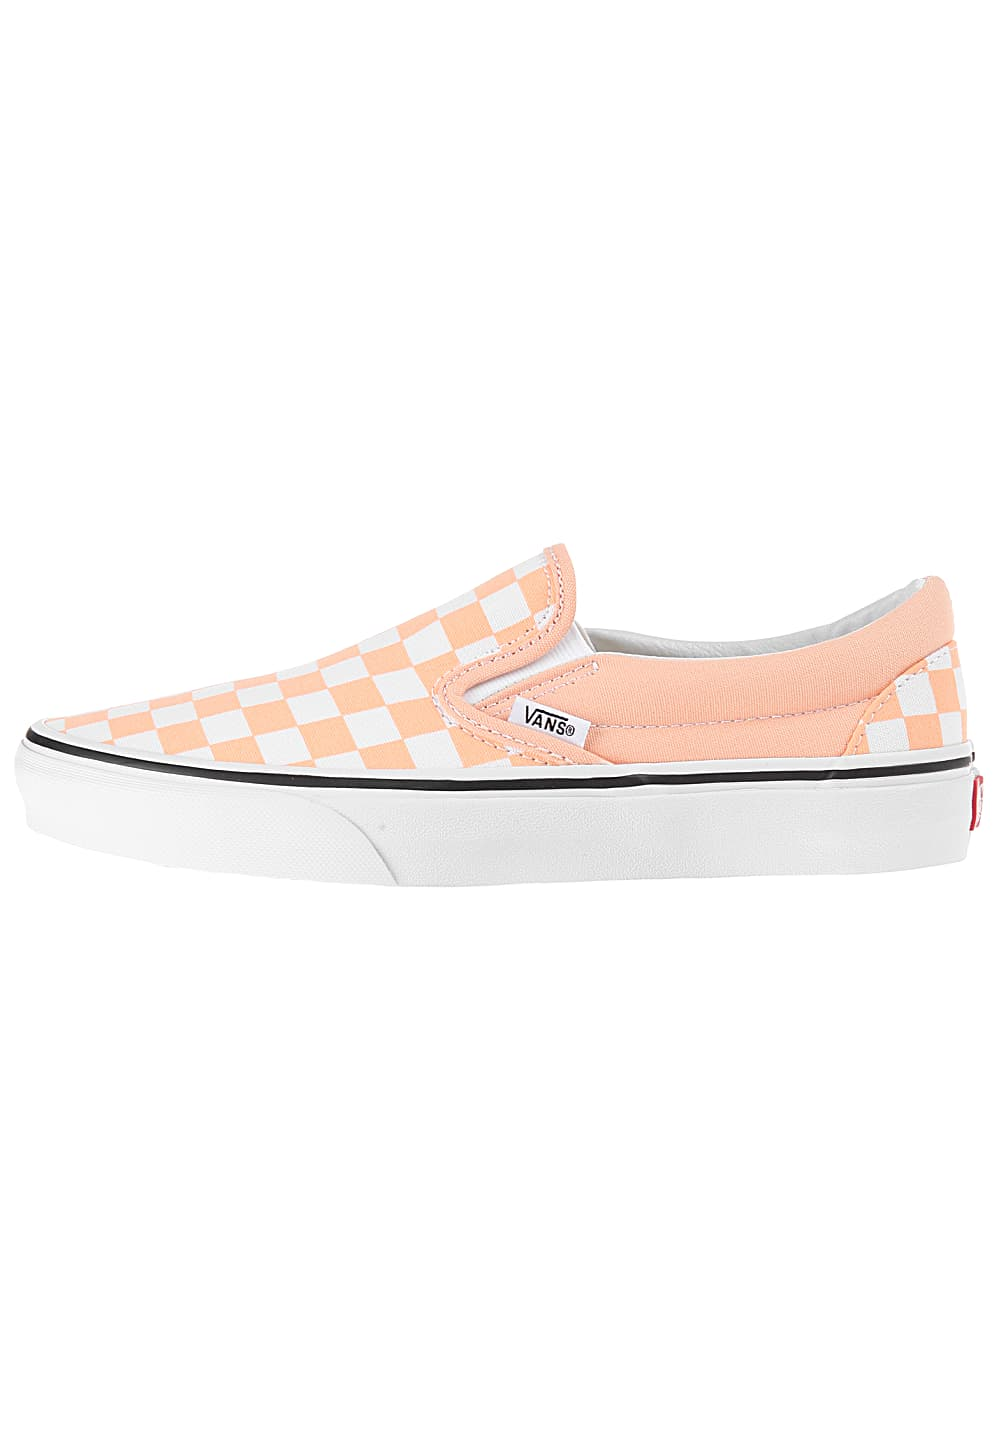 VANS Classic - Slip Ons - Orange - Planet Sports